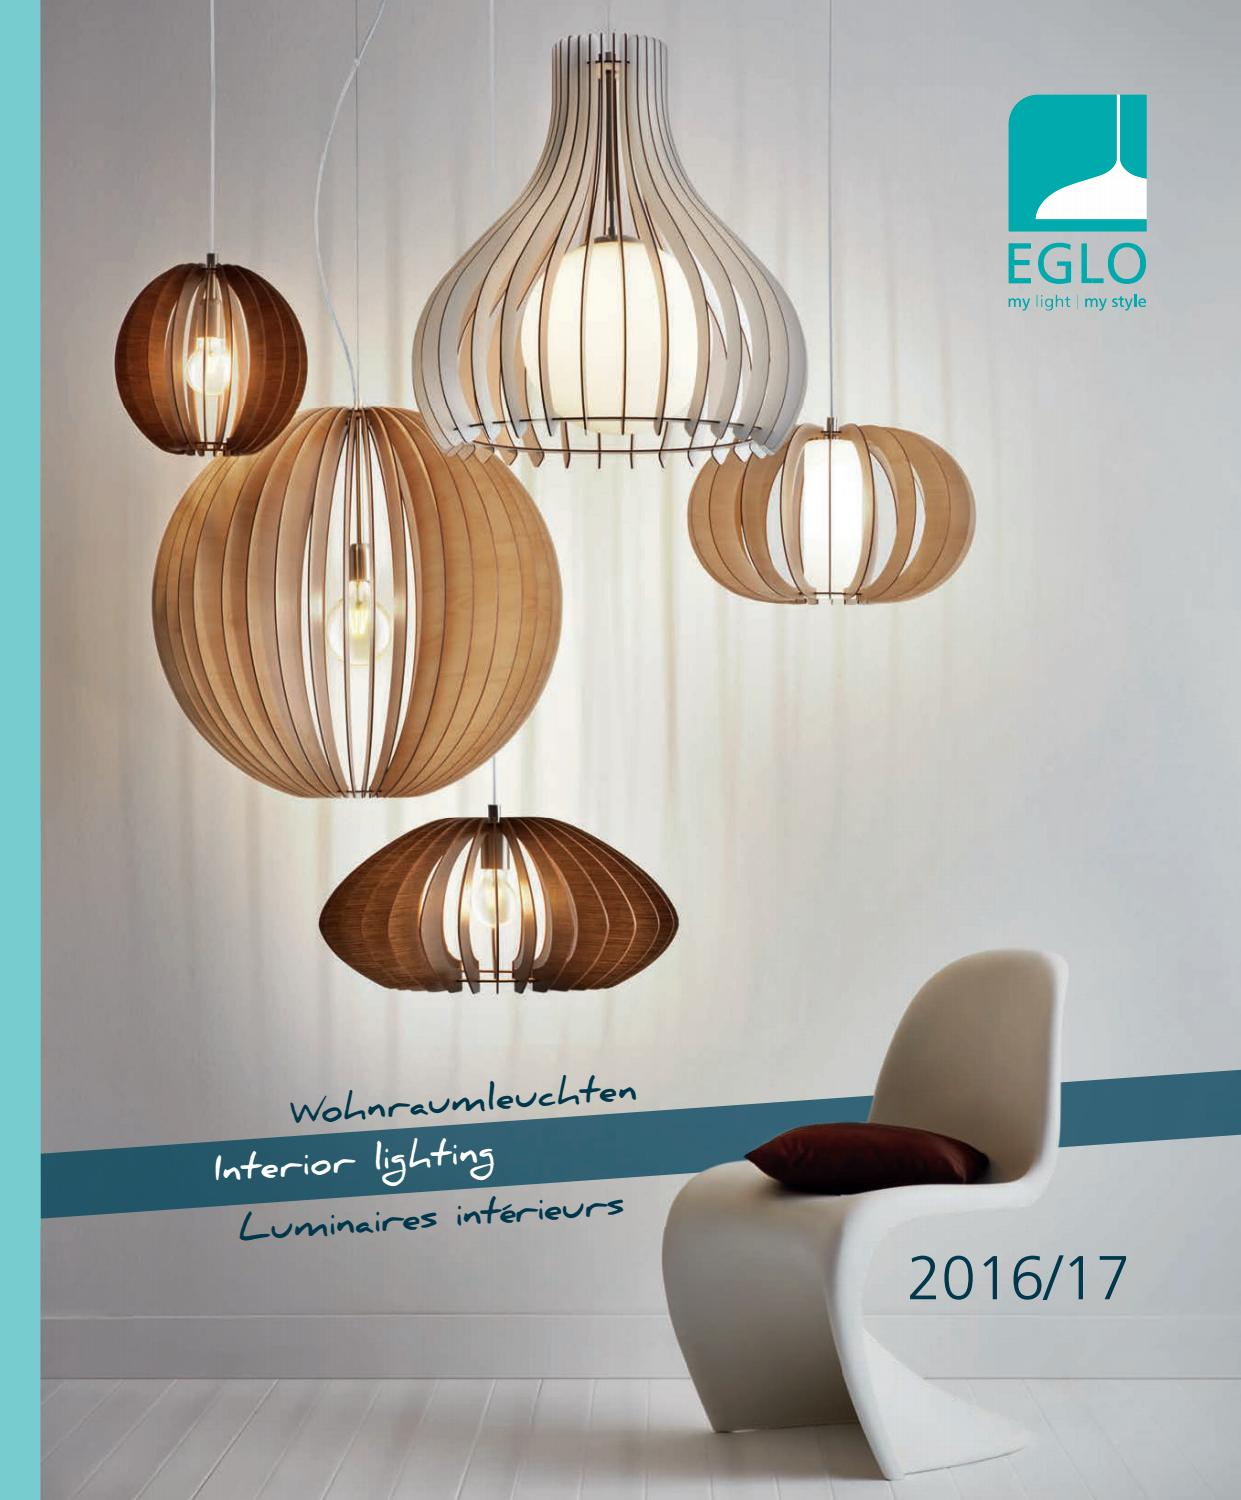 eglo lighting catalogue 2016 17 by kes lighting issuu. Black Bedroom Furniture Sets. Home Design Ideas